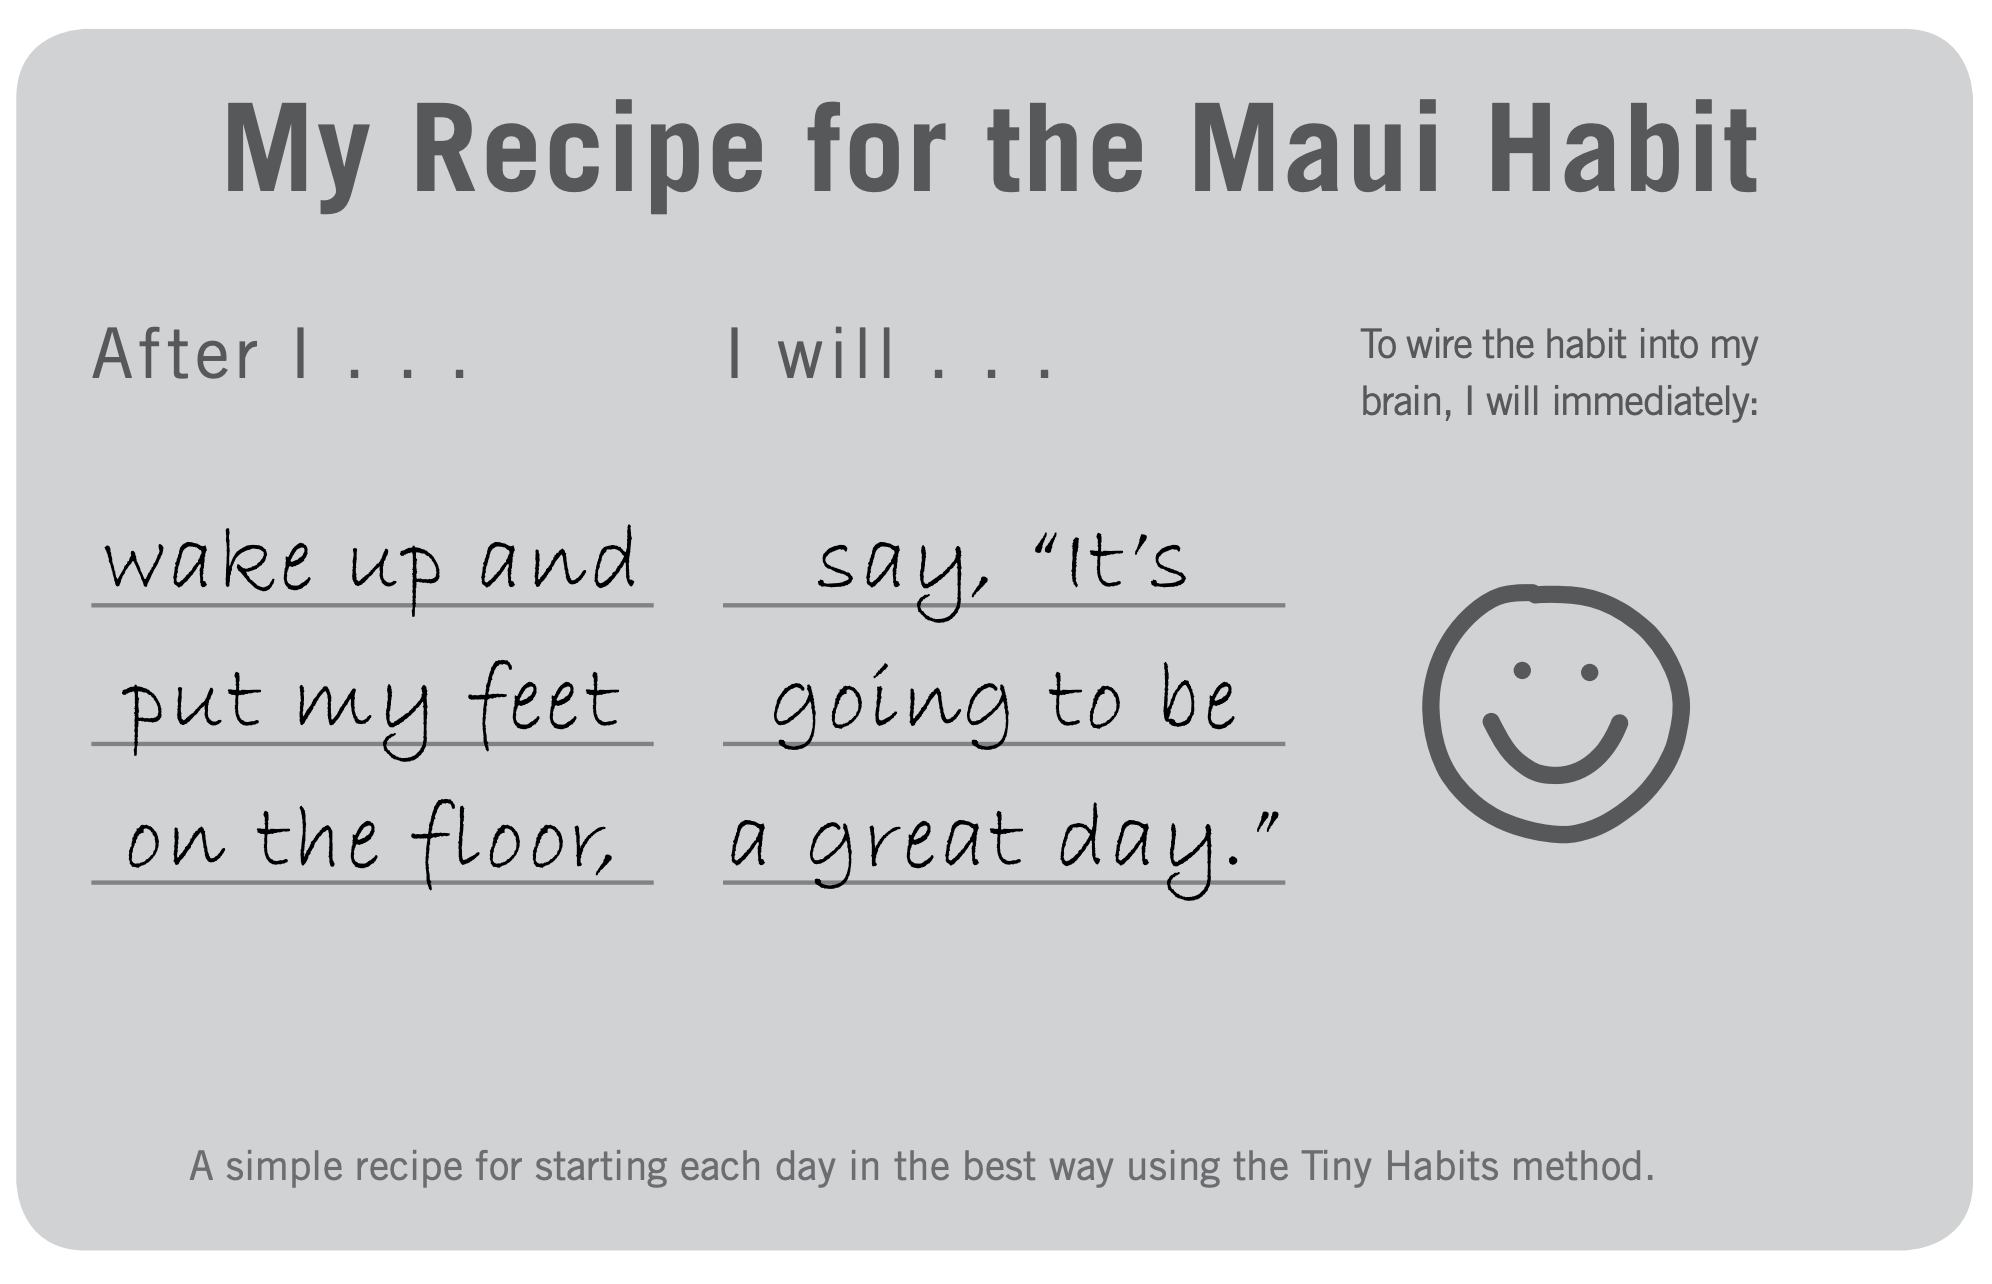 The recipe for the Maui Habit